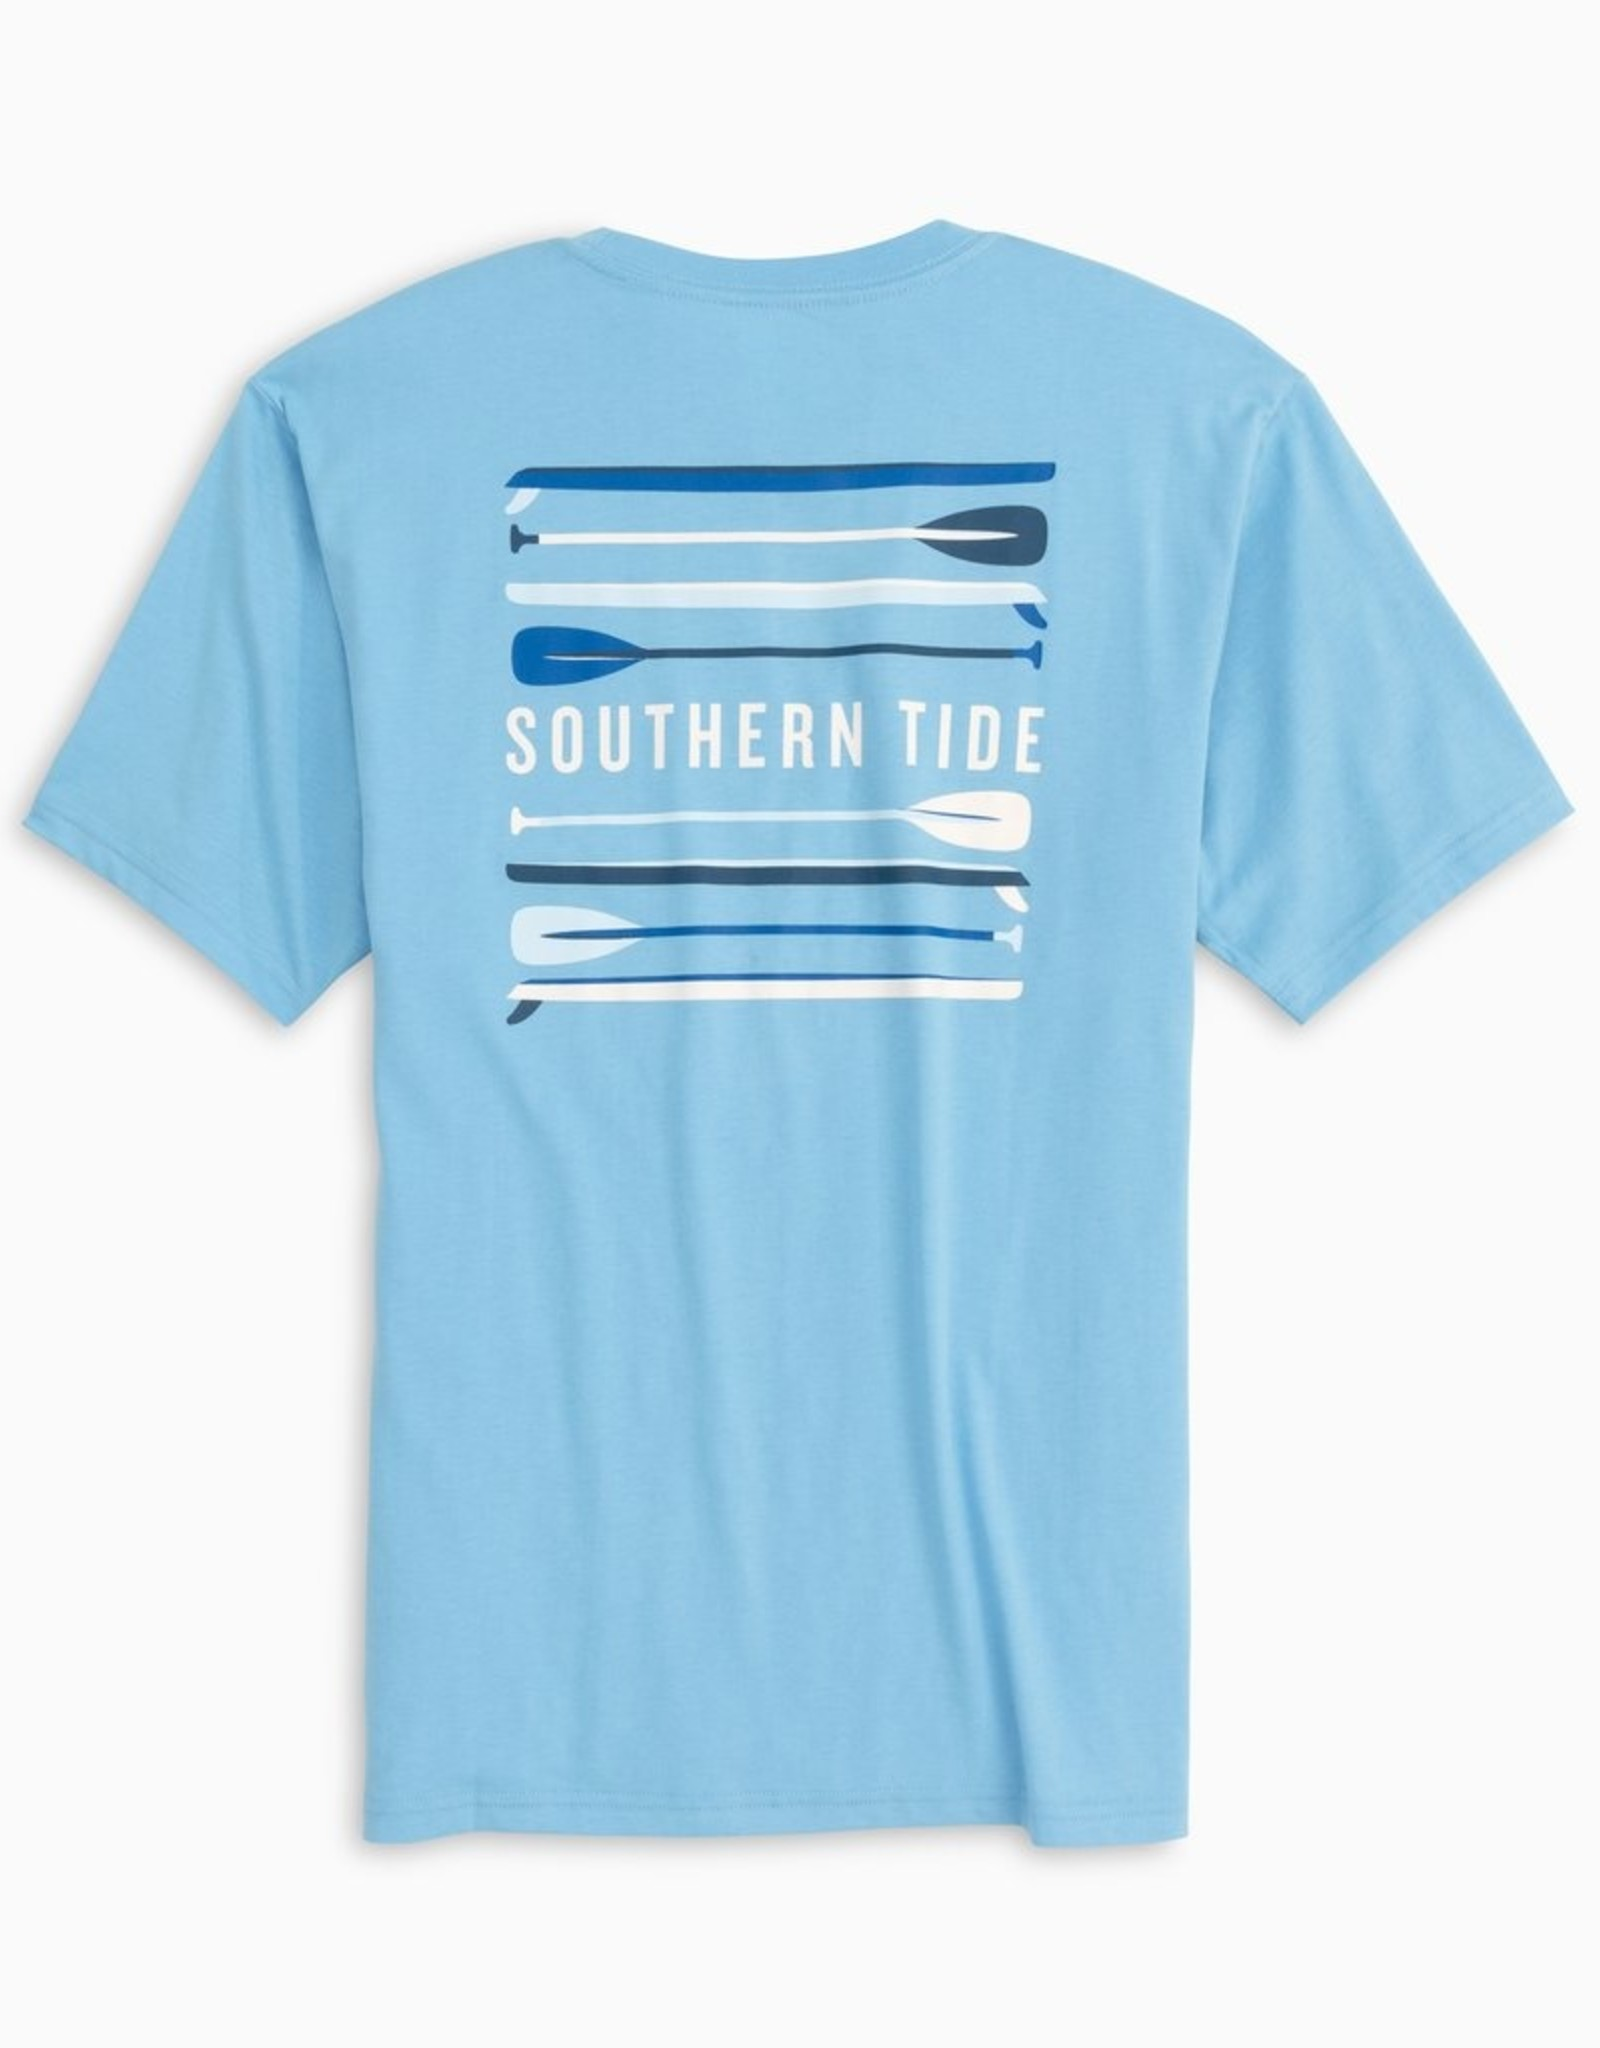 Southern Tide Paddleboard Stack Tee